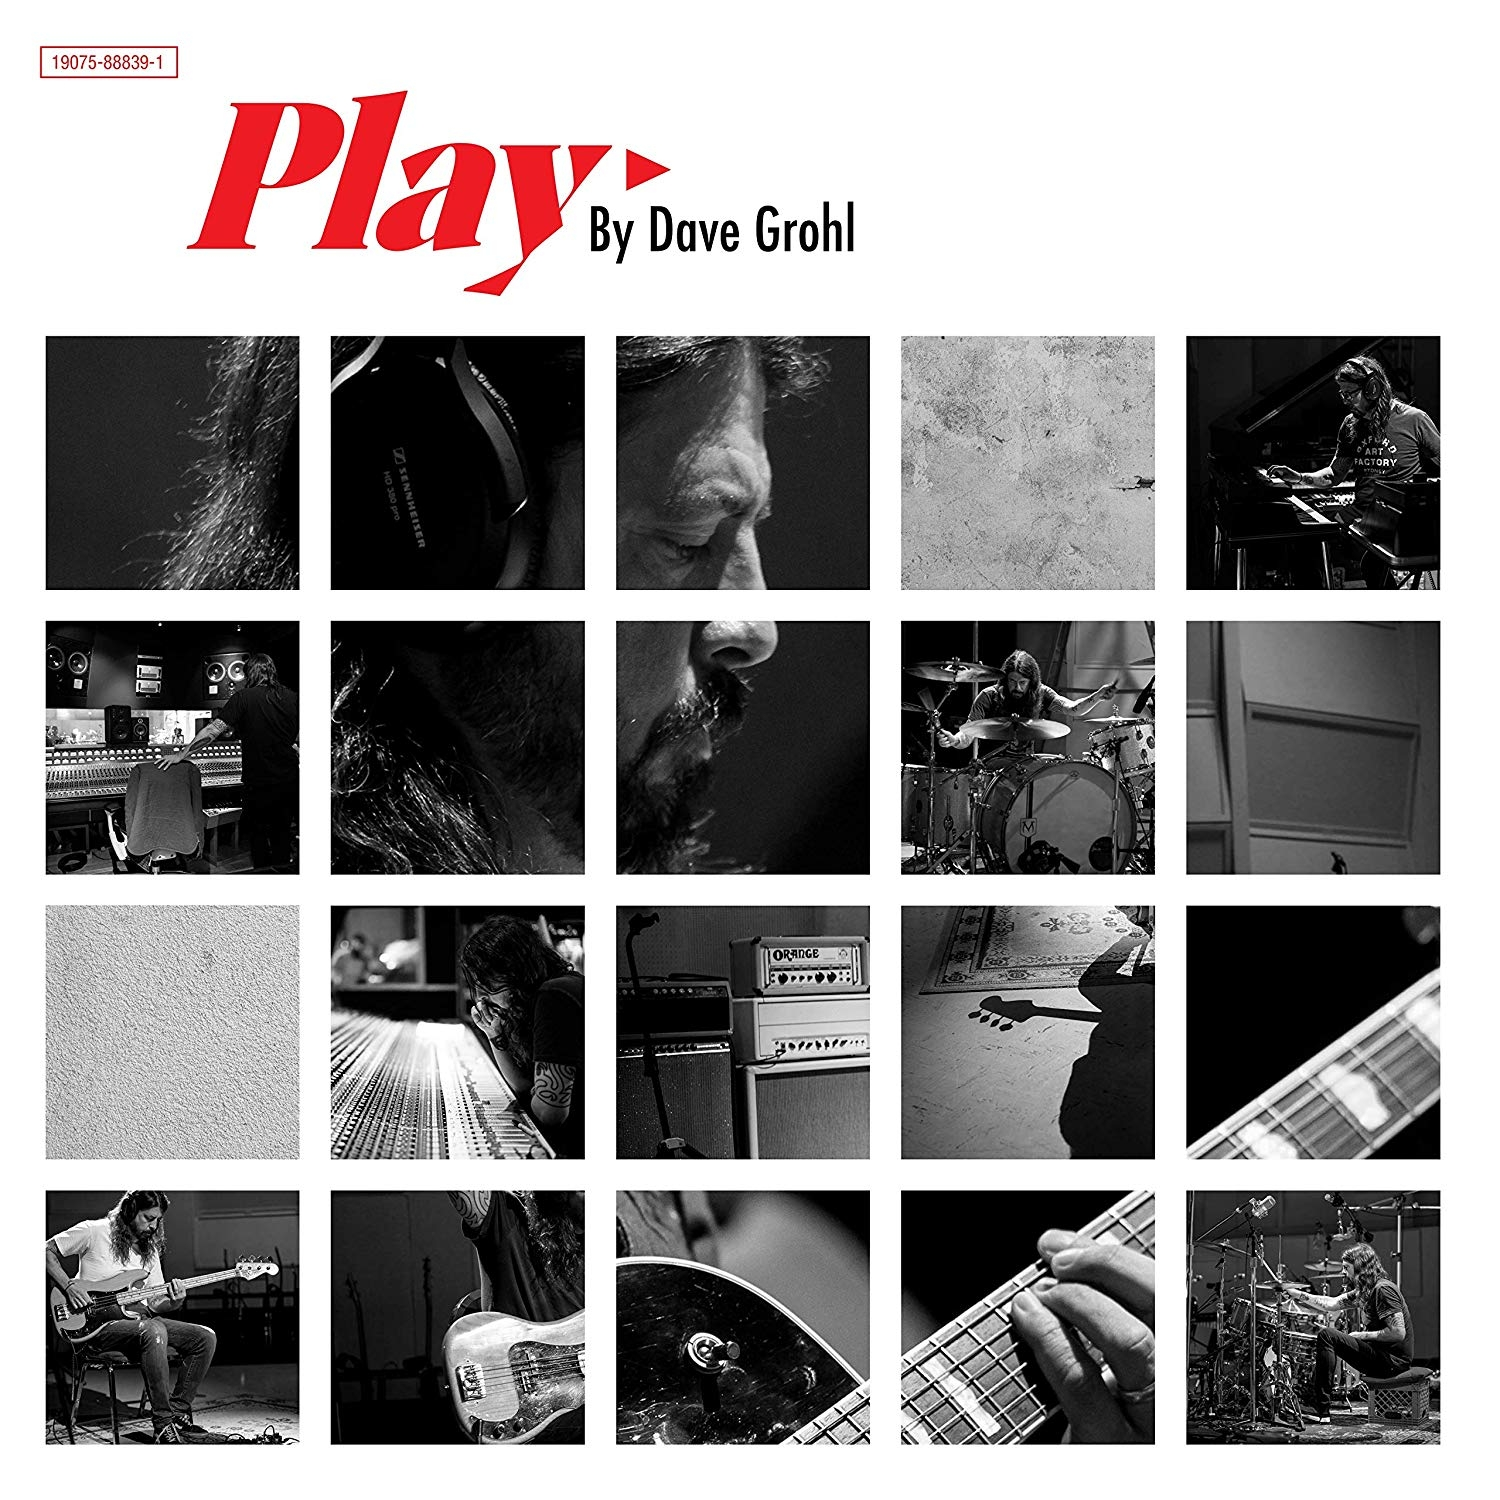 Play de Dave Grohl (2018) - Ten minutes song #3